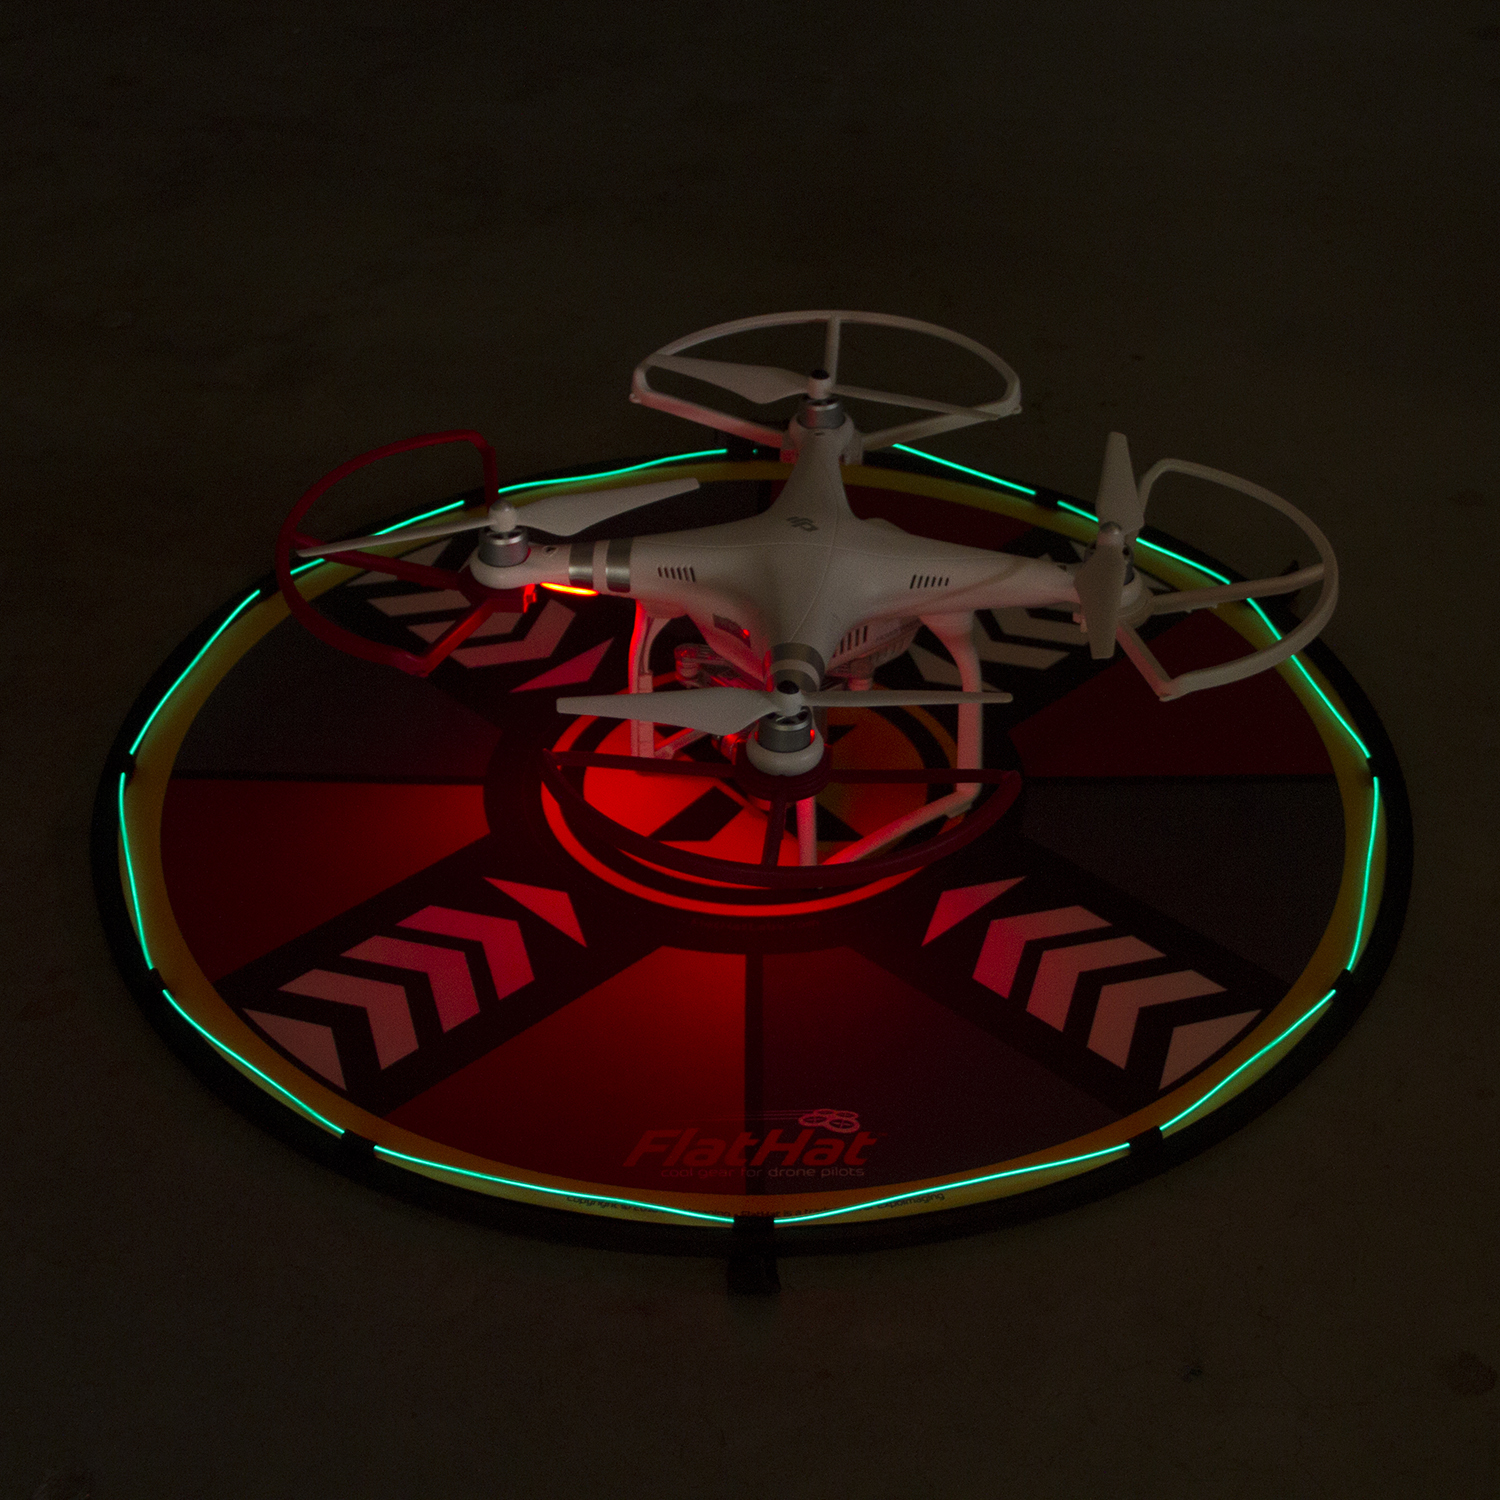 FlatHat Introduces Collapsible Drone Pads, Lighting Kits